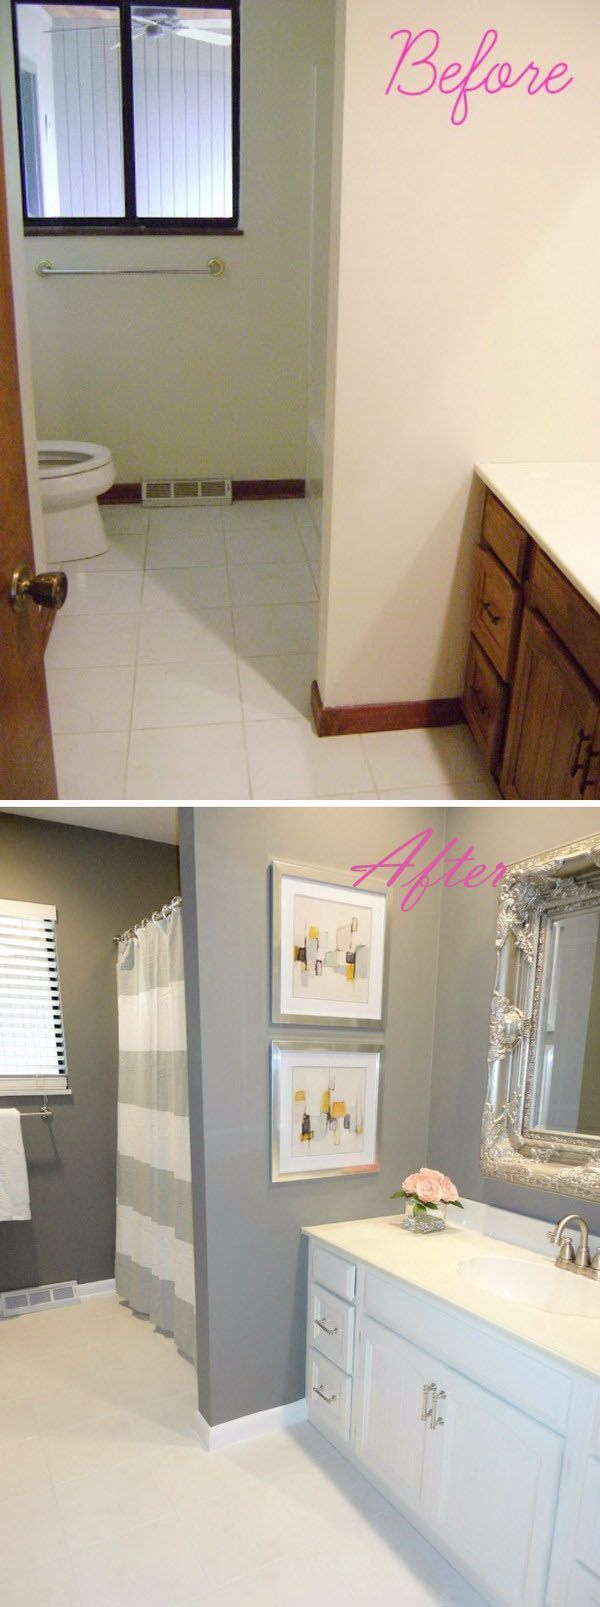 Spa bathroom color schemes - Before And After 20 Awesome Bathroom Makeovers